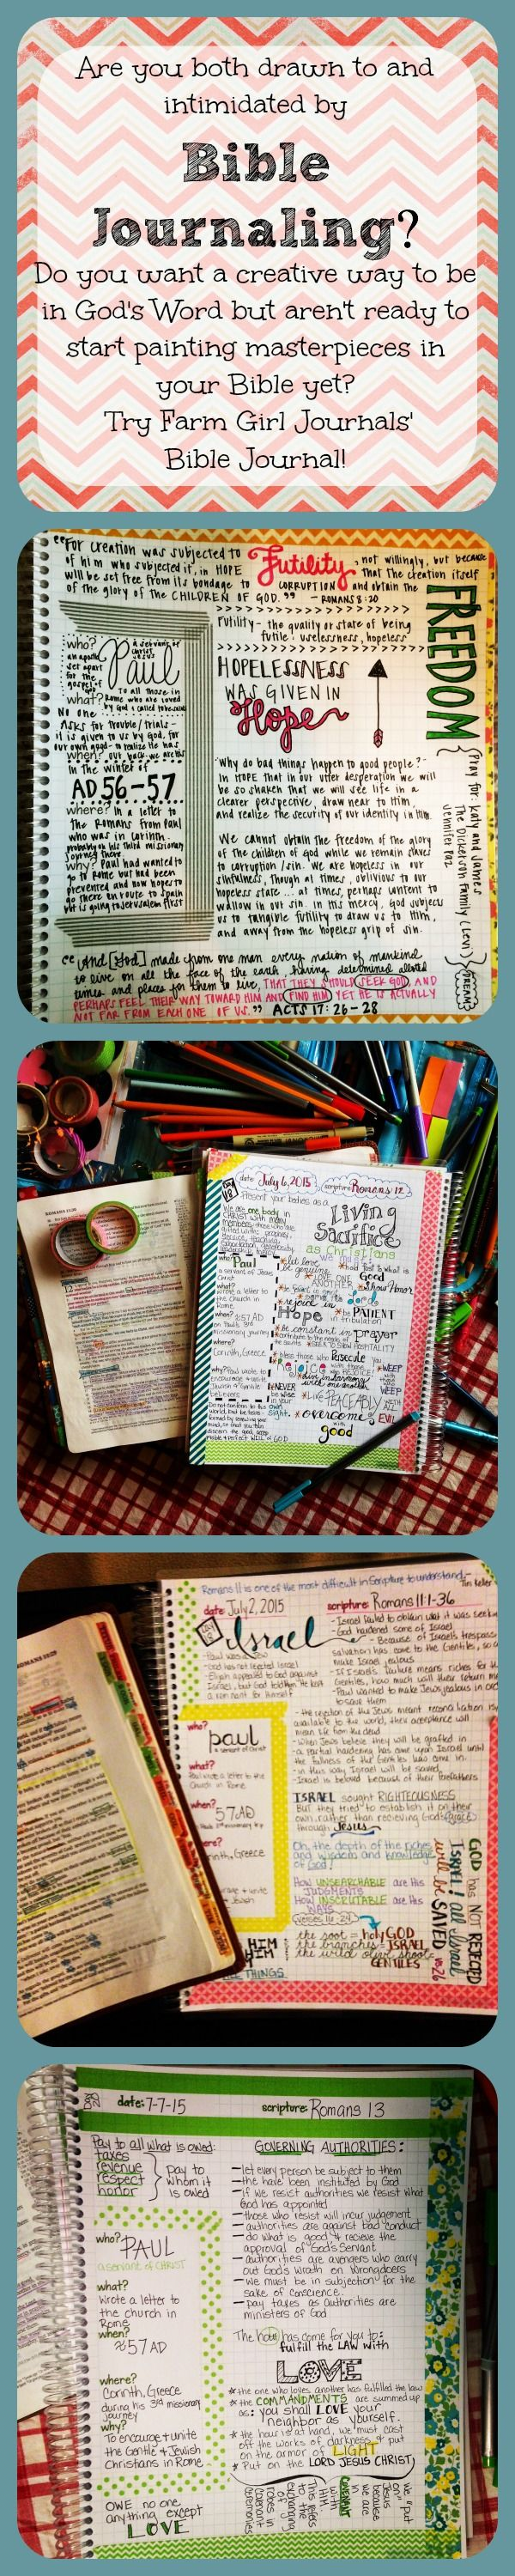 Love these Bible Journals!  They are so easy to use and you can go basic and just take notes or go all out and be as creative as you like.  Super versatile!